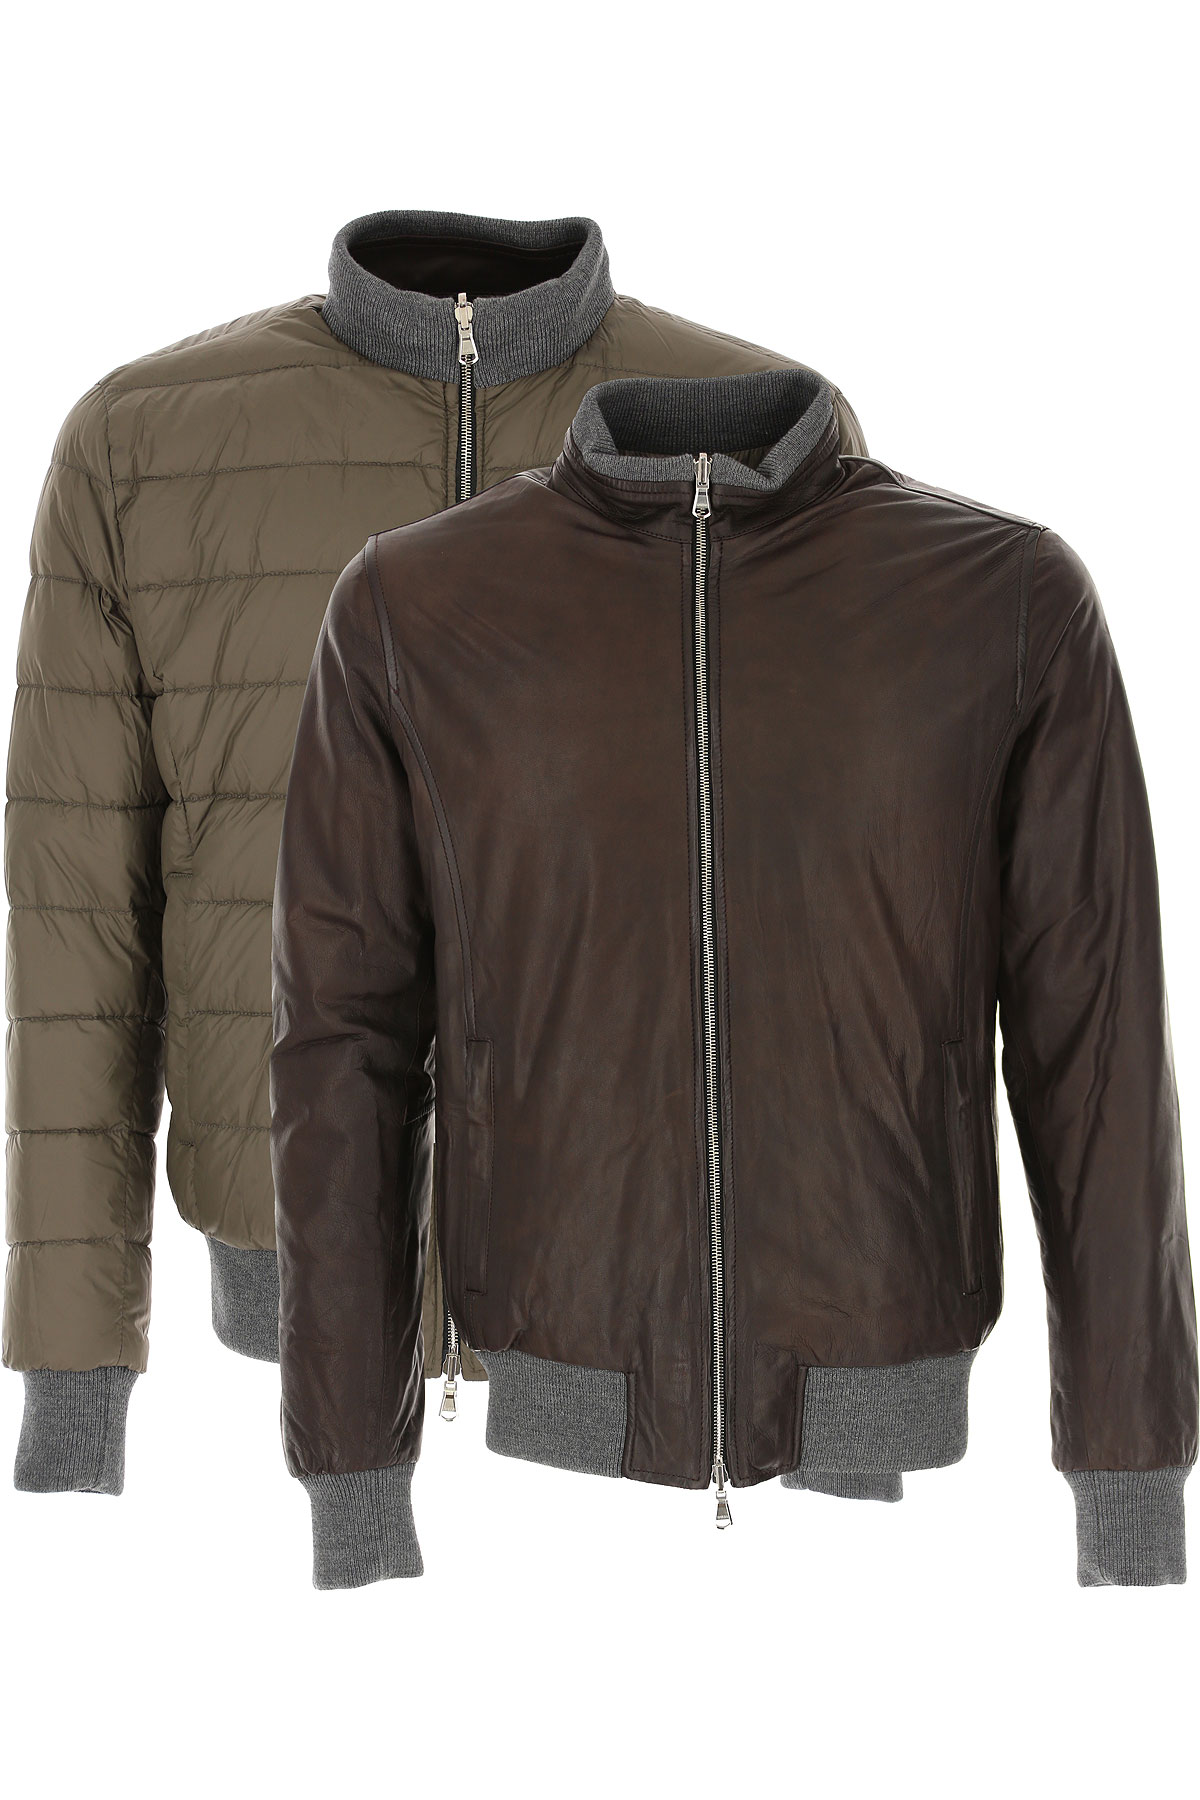 Barba Leather Jacket for Men On Sale, Moro, Leather, 2019, L XXL